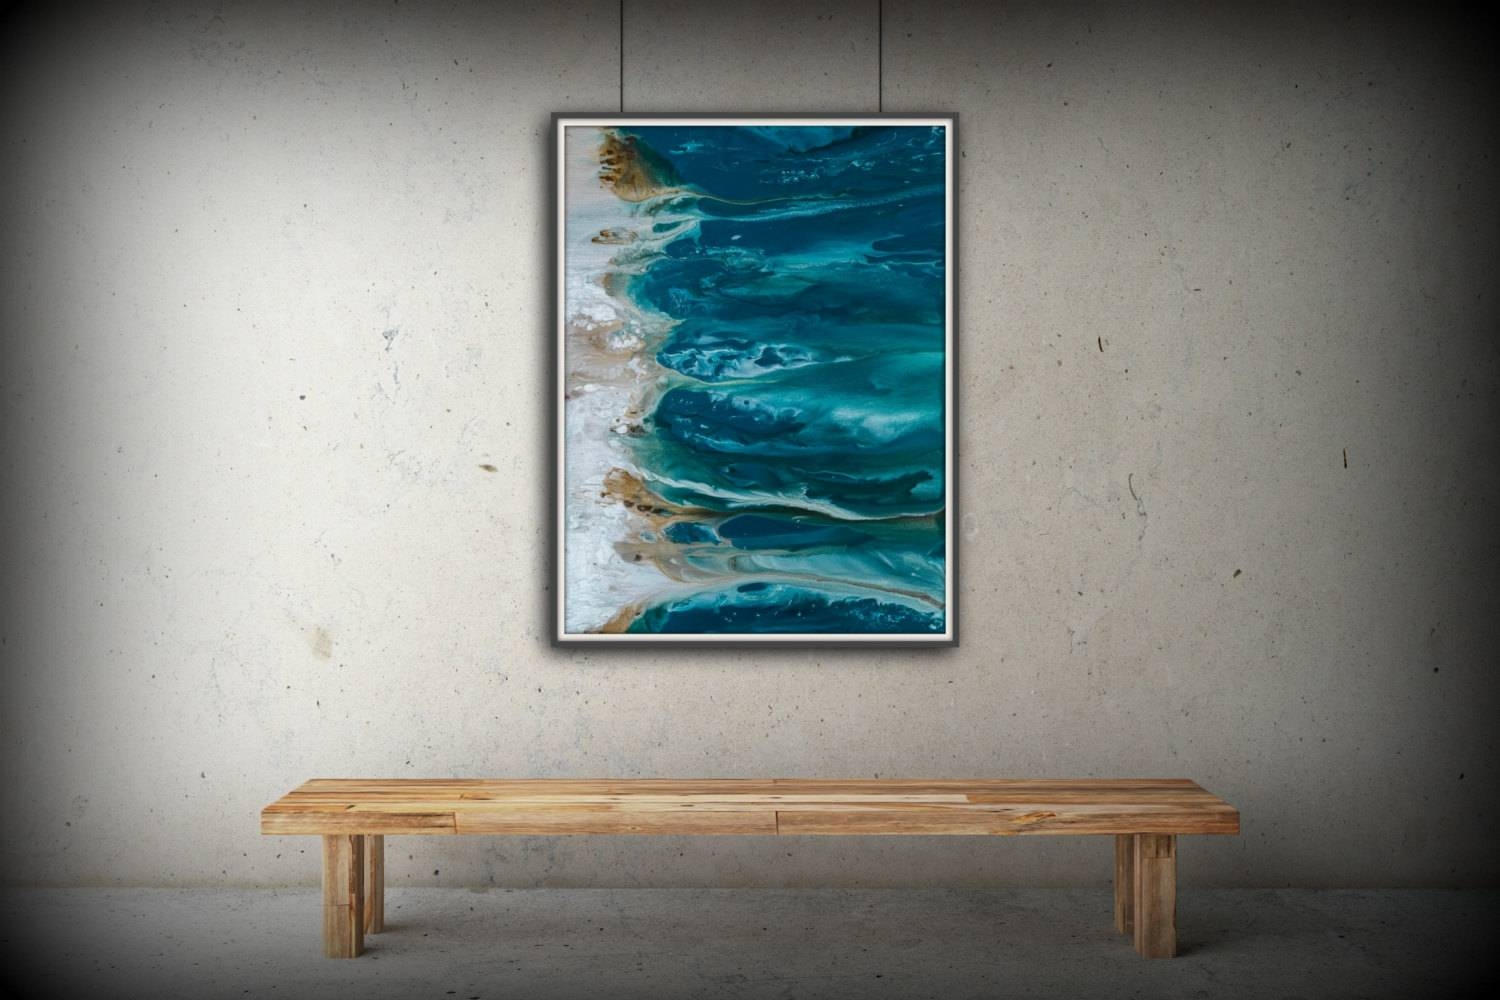 Abstract Art Blue Wall Art Coastal Landscape Giclee Large In Recent Coastal Wall Art Canvas (View 4 of 20)